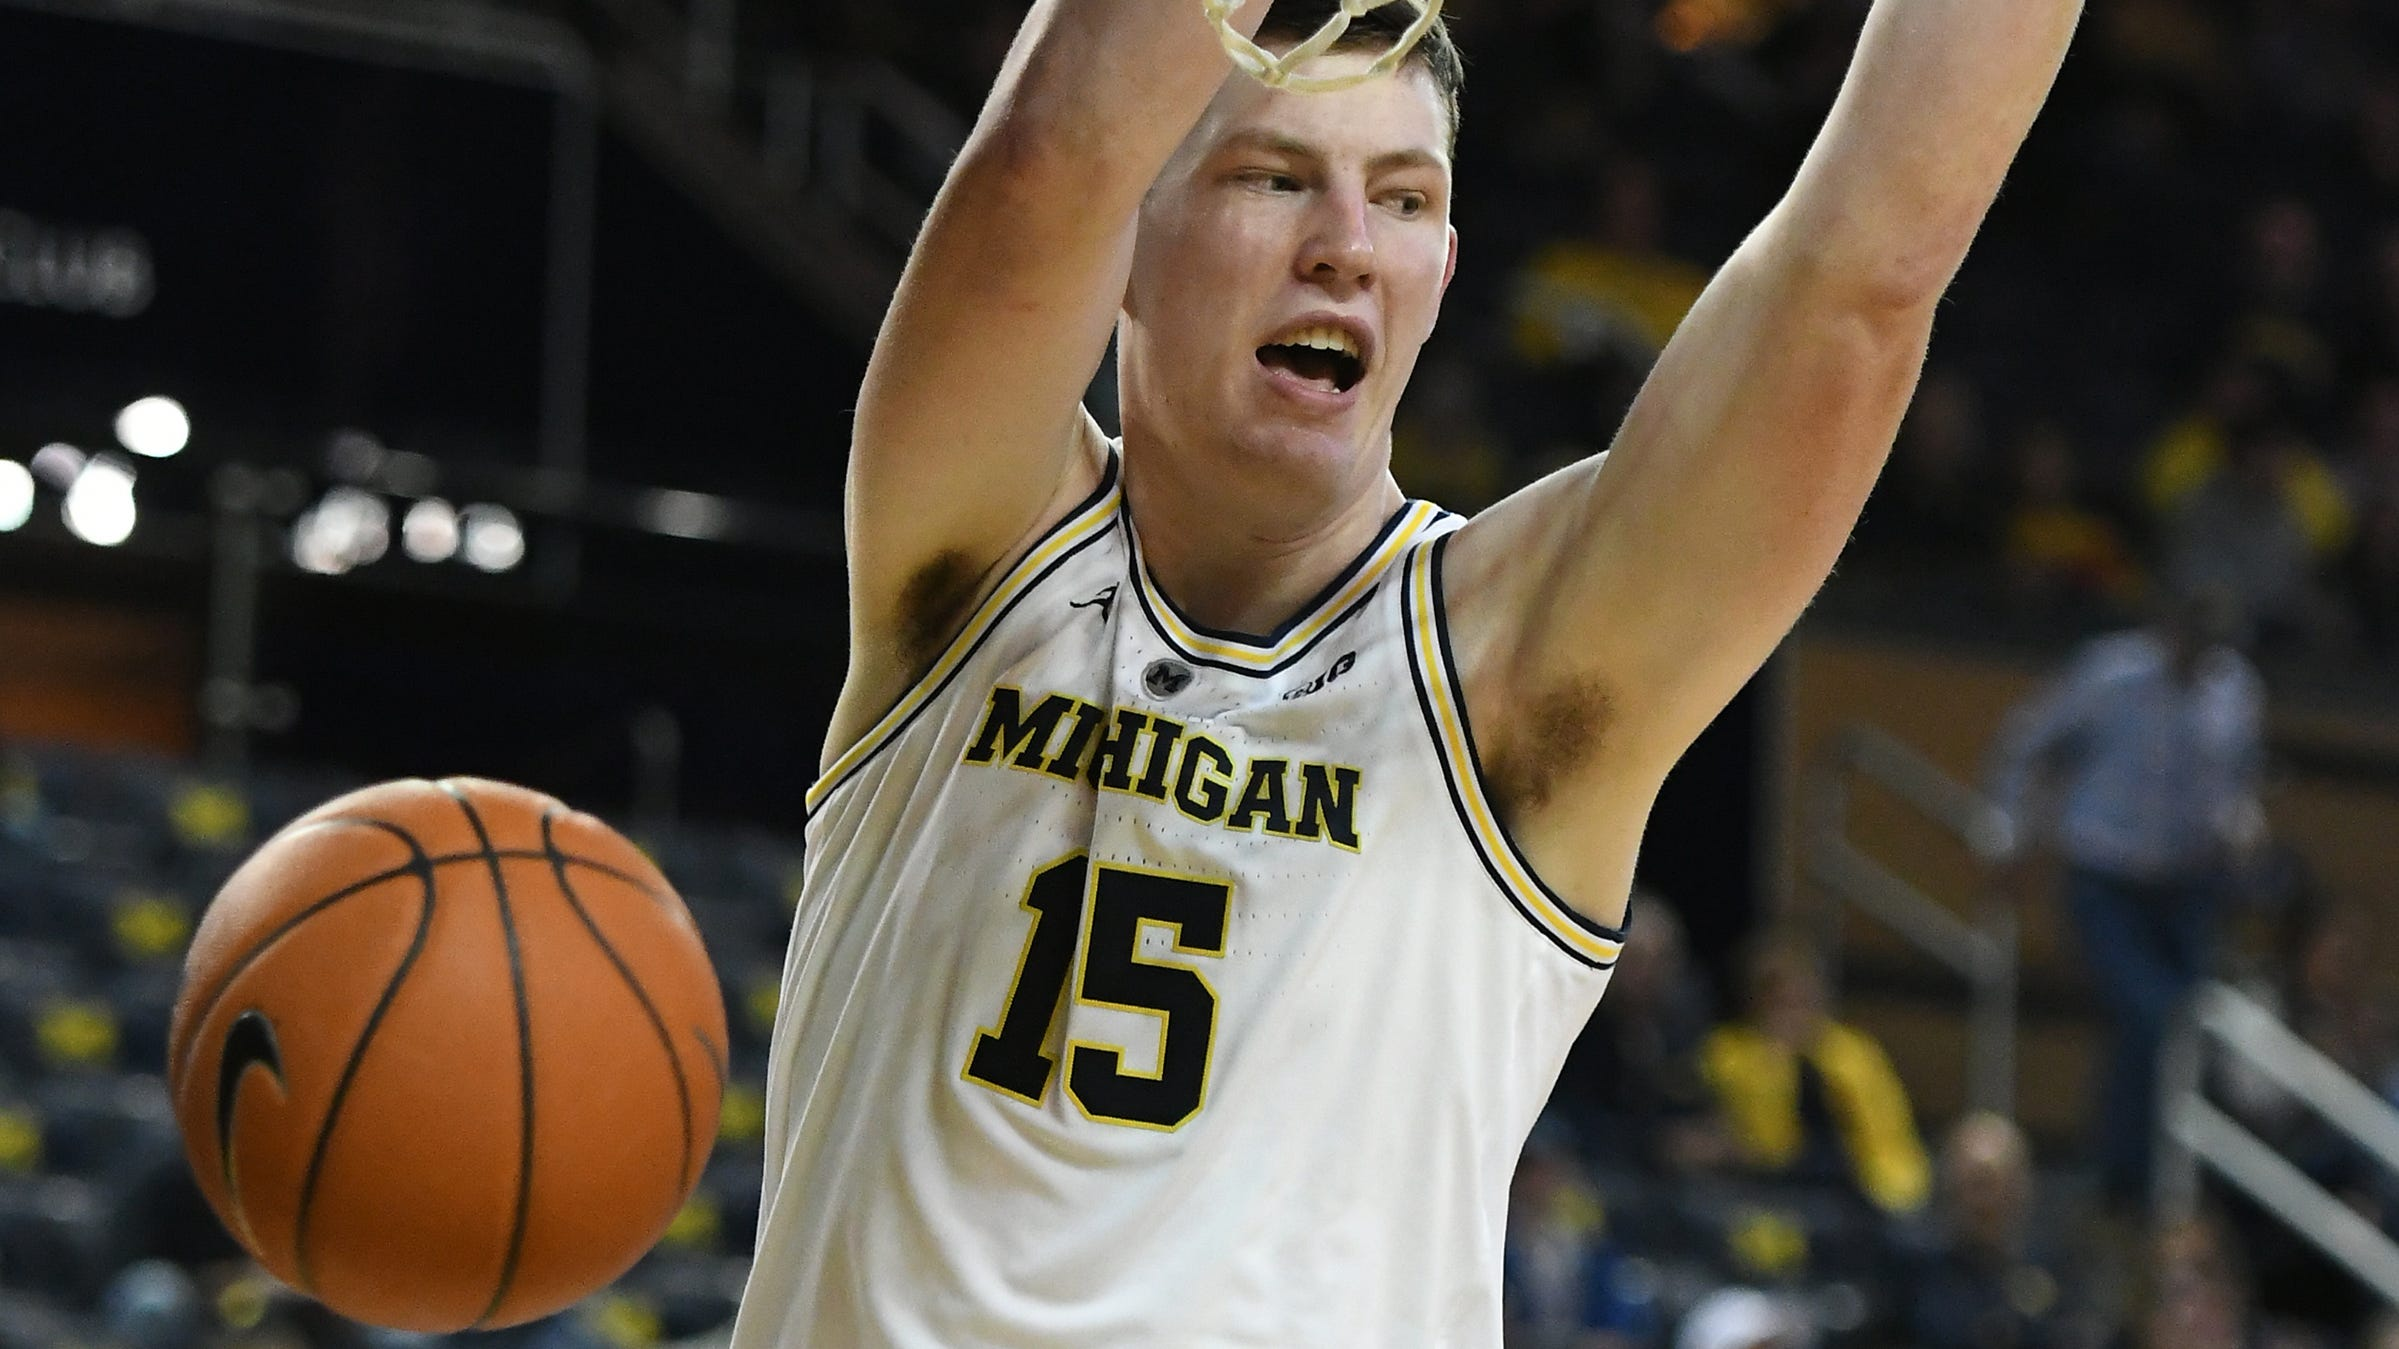 Michigan eyeing more than revenge in rematch with Villanova